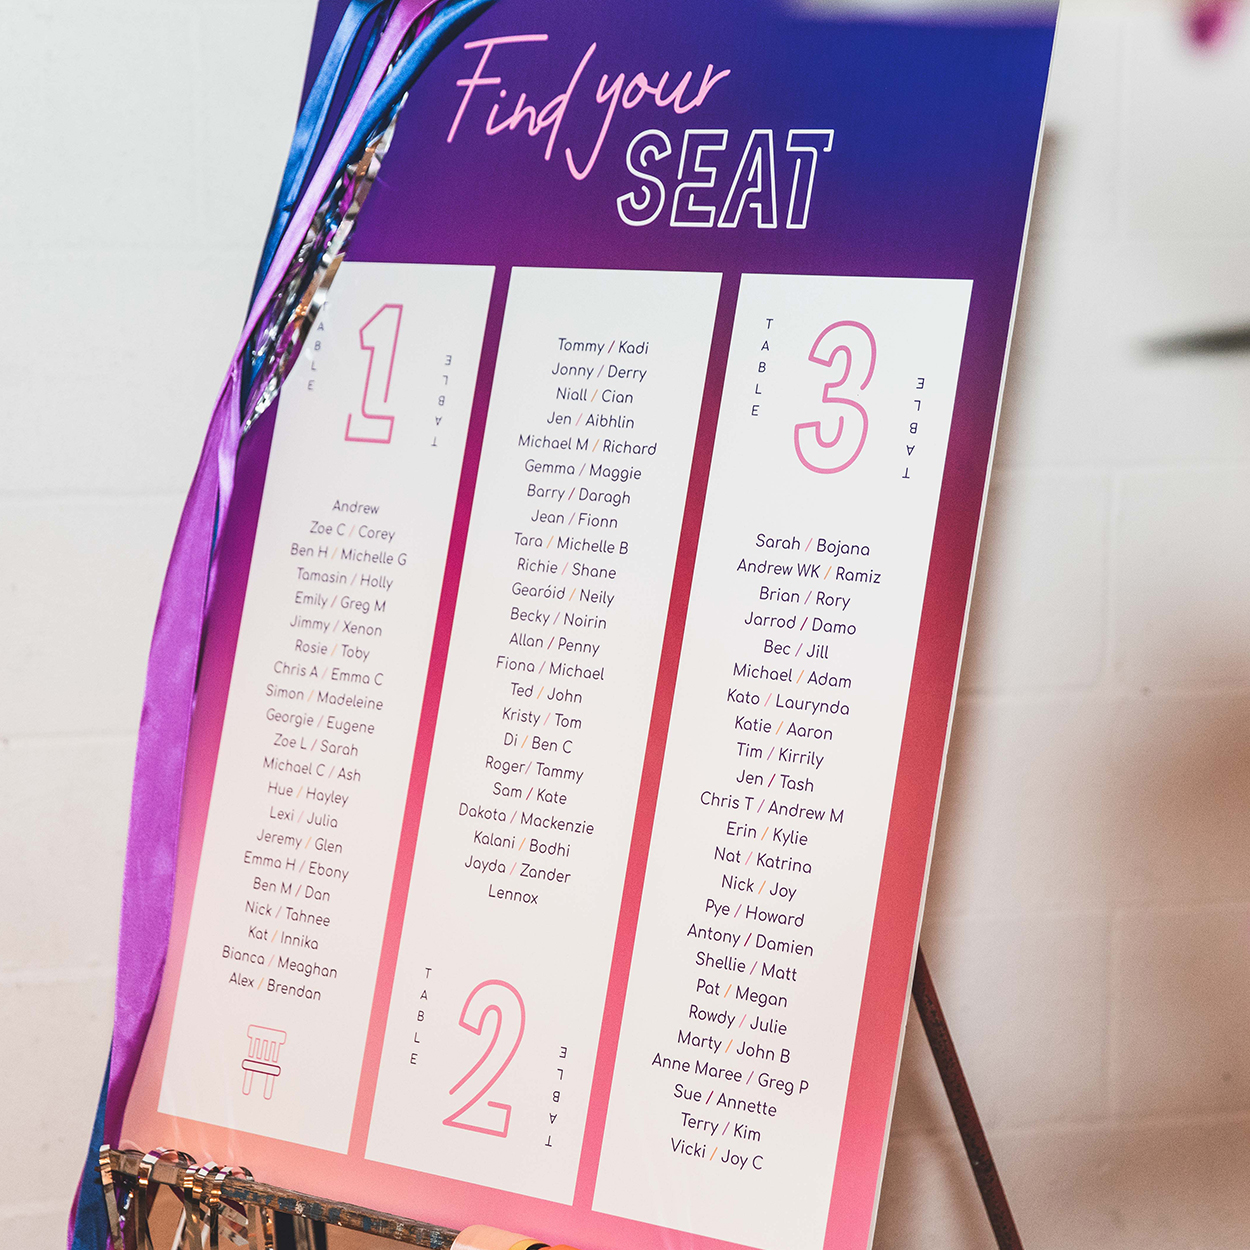 Wedding seating chart with custom typography against wall with tinsel and ribbons